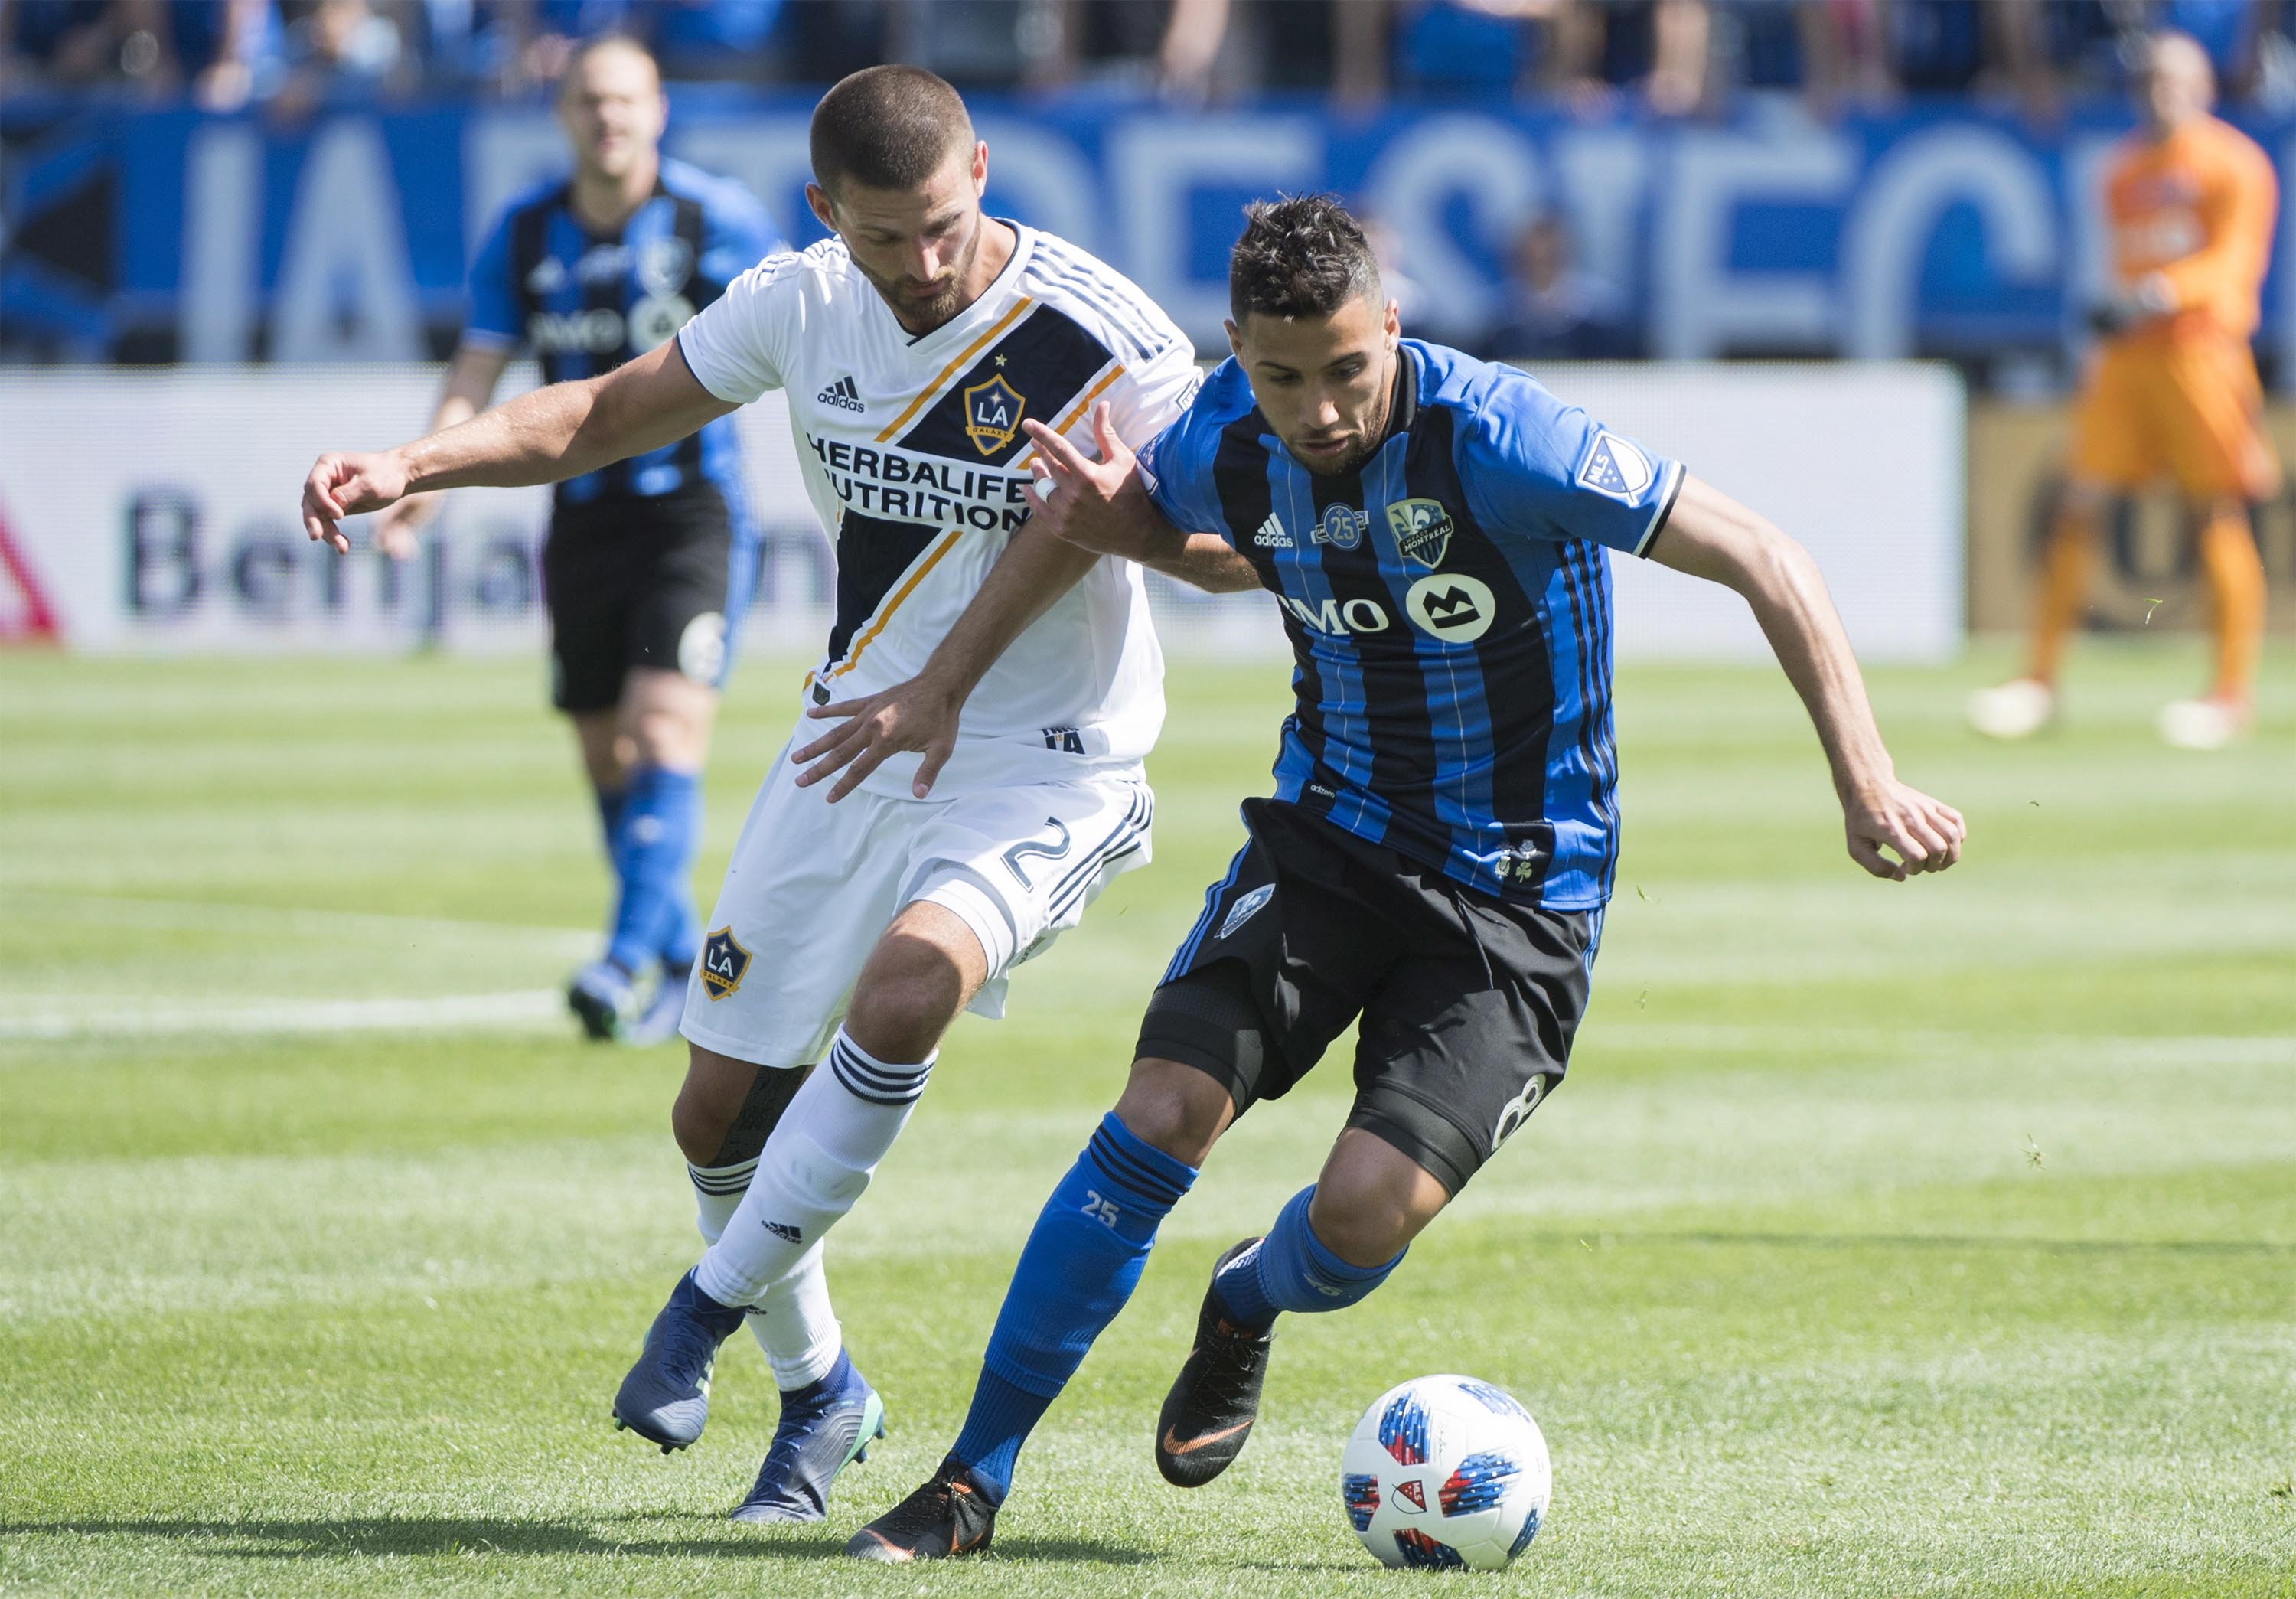 Montreal Impact's Saphir Taider (right) challenges L.A. Galaxy's Perry Kitchen during first-half MLS soccer game action in Montreal on Monday.